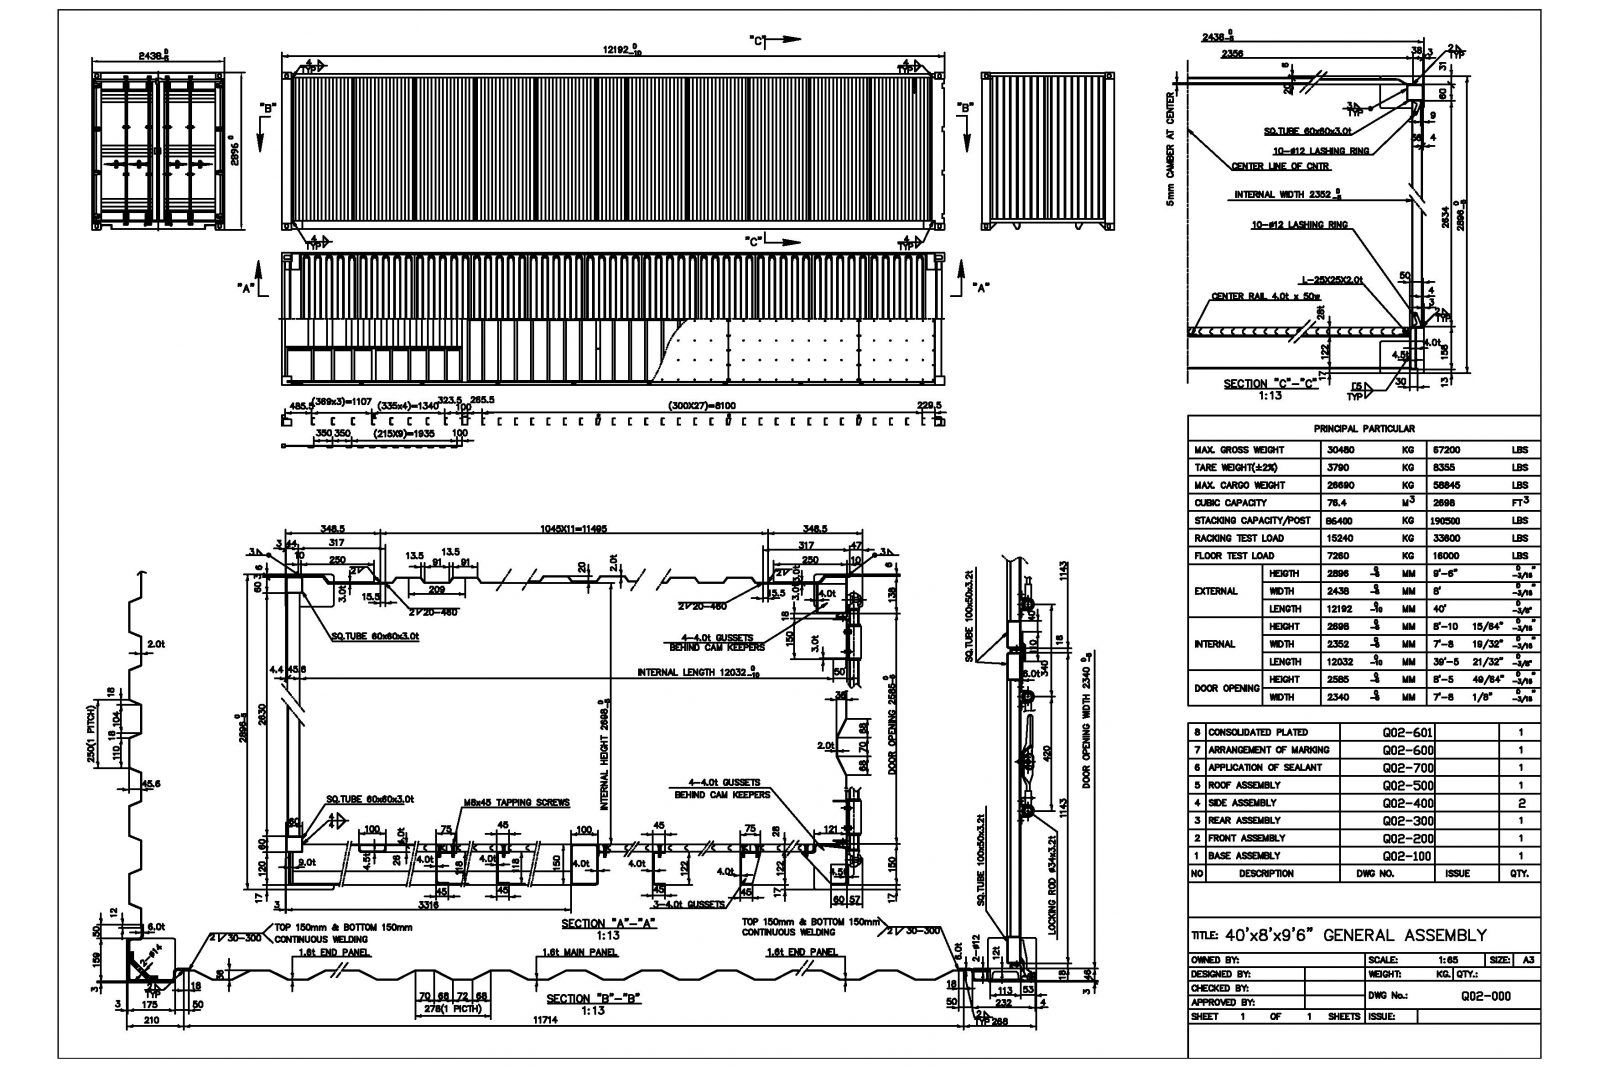 40hc Technical Drawing Shipping Container Dimensions Container Dimensions Shipping Container Dimensions Shipping Container